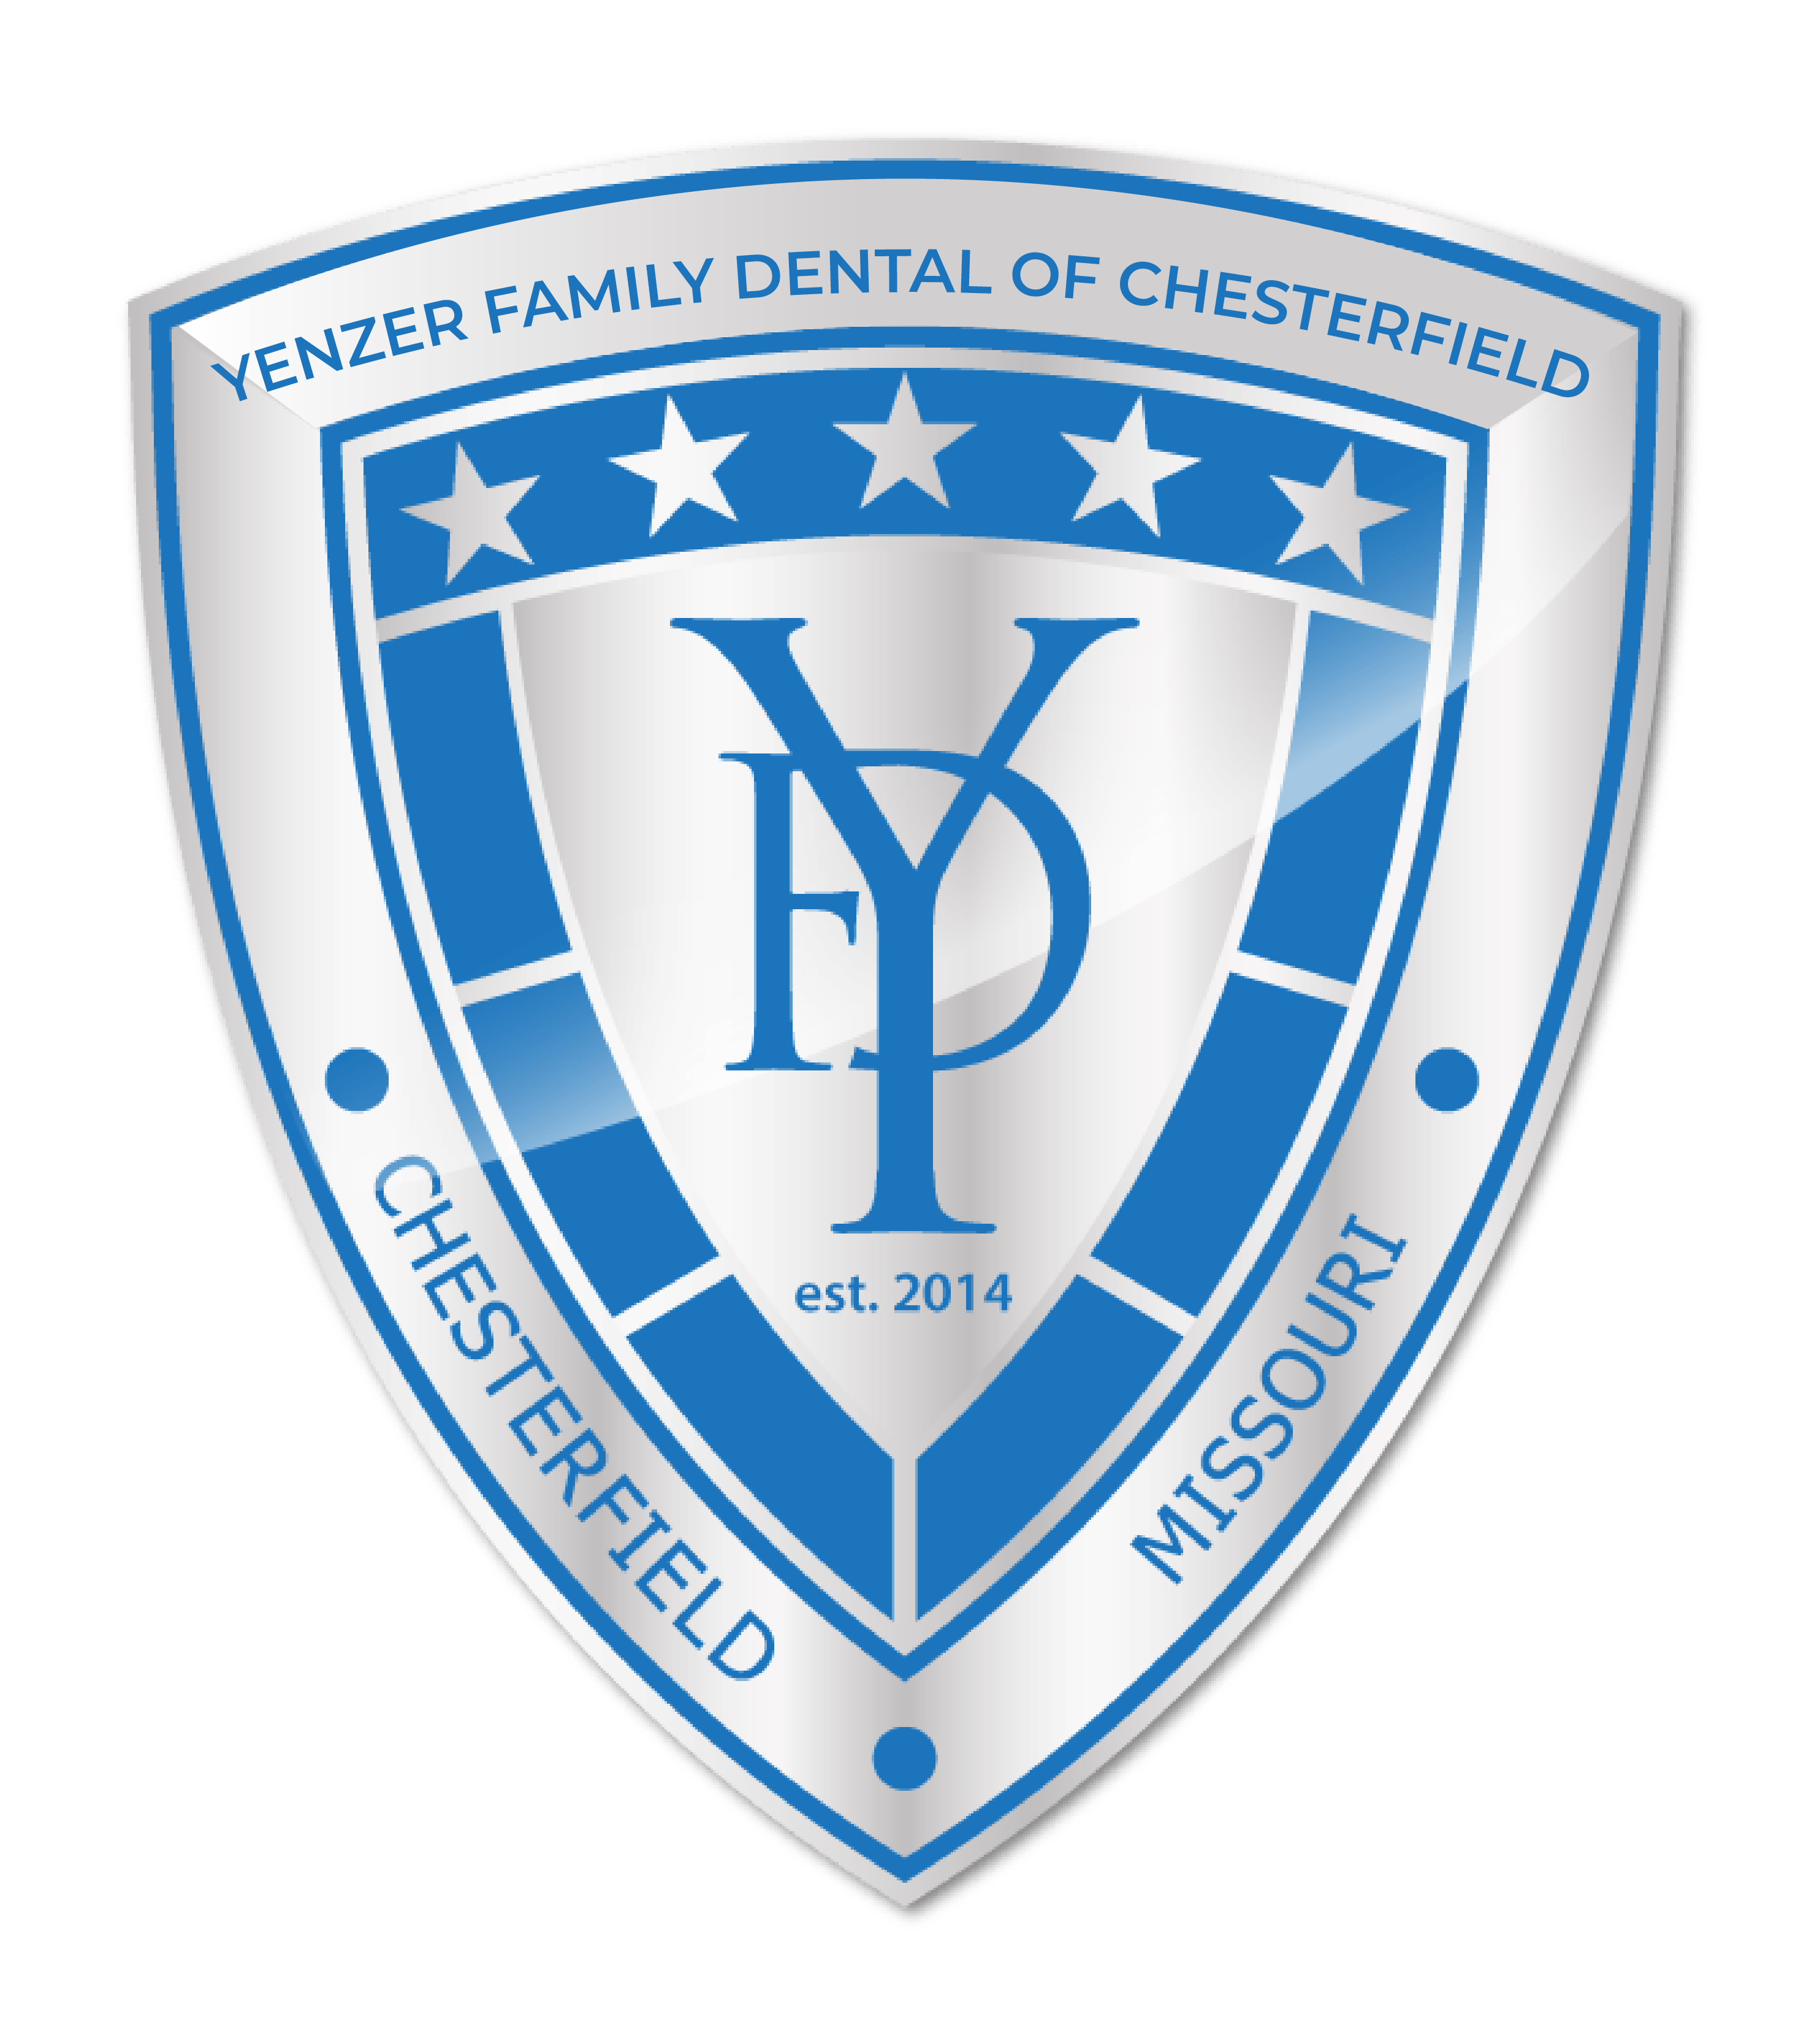 Yenzer Dental logo